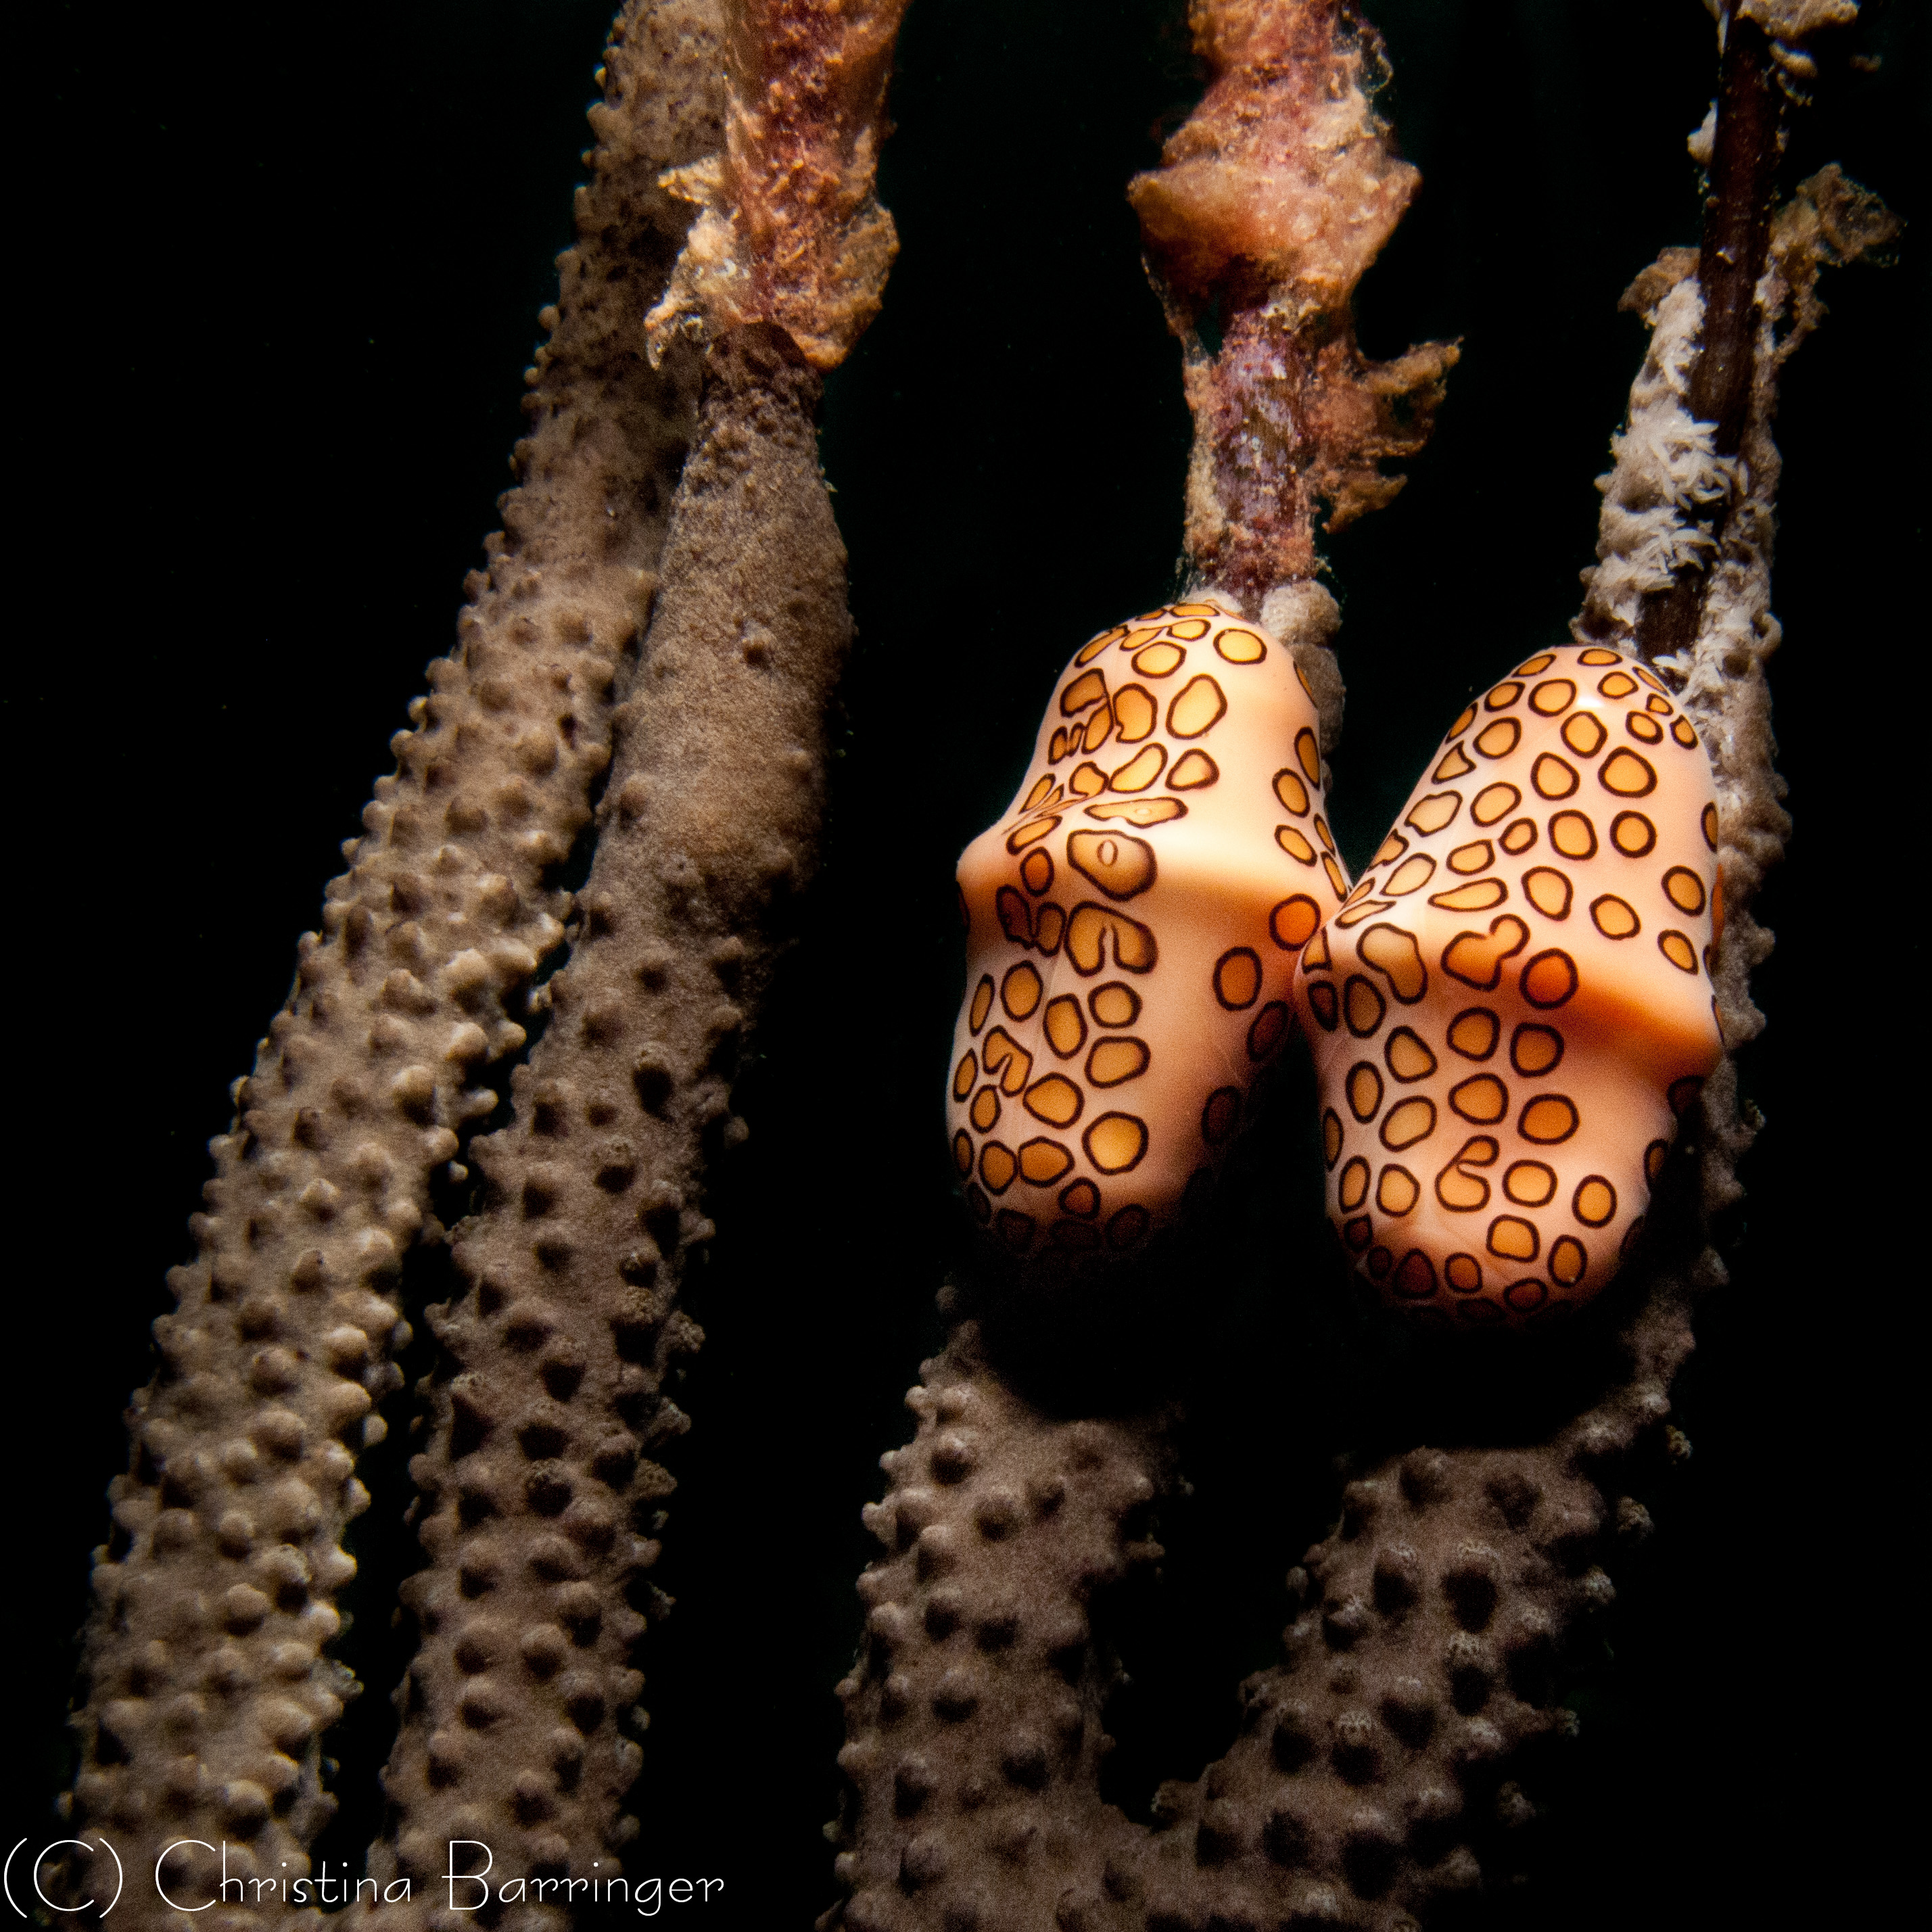 Flamingo Tongue Snails